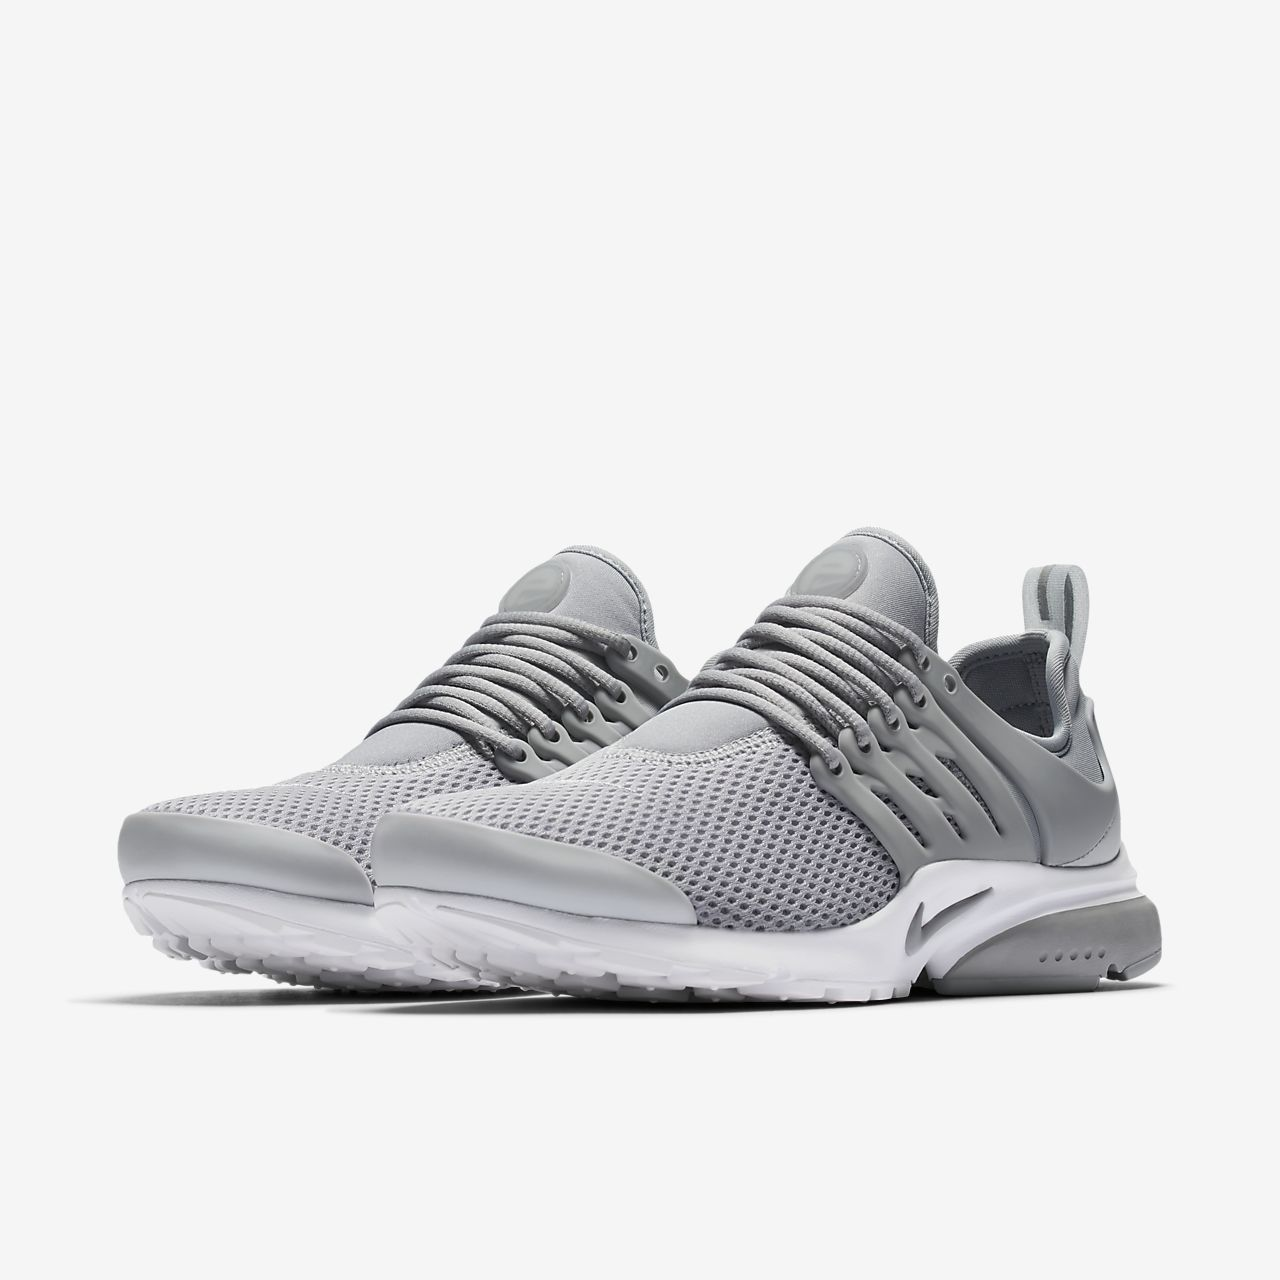 uk availability 686f4 335fc Nike Air Presto Women s Shoe - gray -  120 - Nike.com